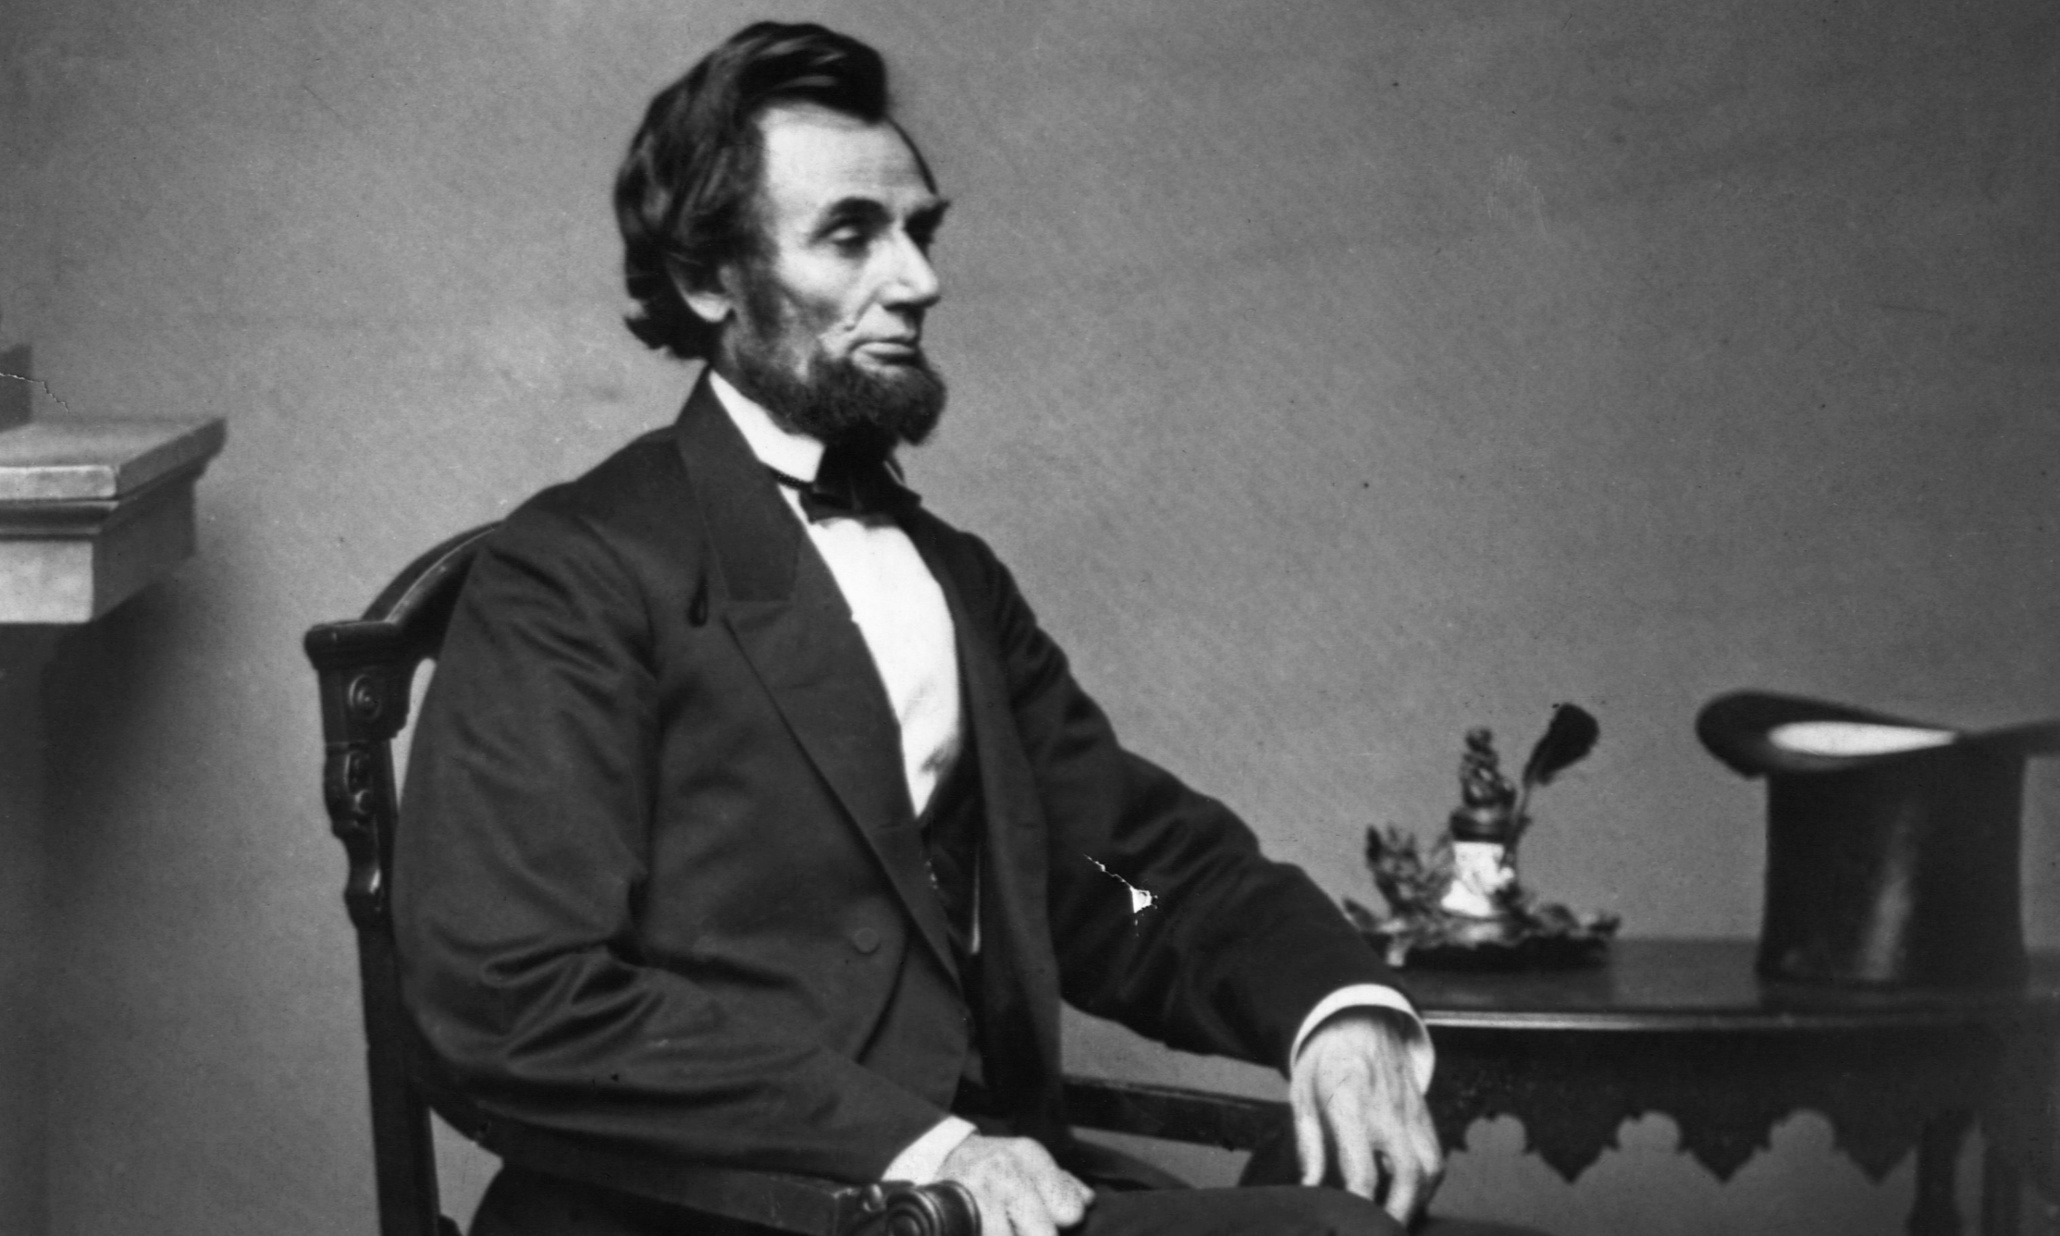 lincoln and good politics A major effect lincoln has on the us today is simply through the good example he set when it came to leadership and integrity many american politicians in our time try to emulate his thinking by using lincoln quotes in their speeches.